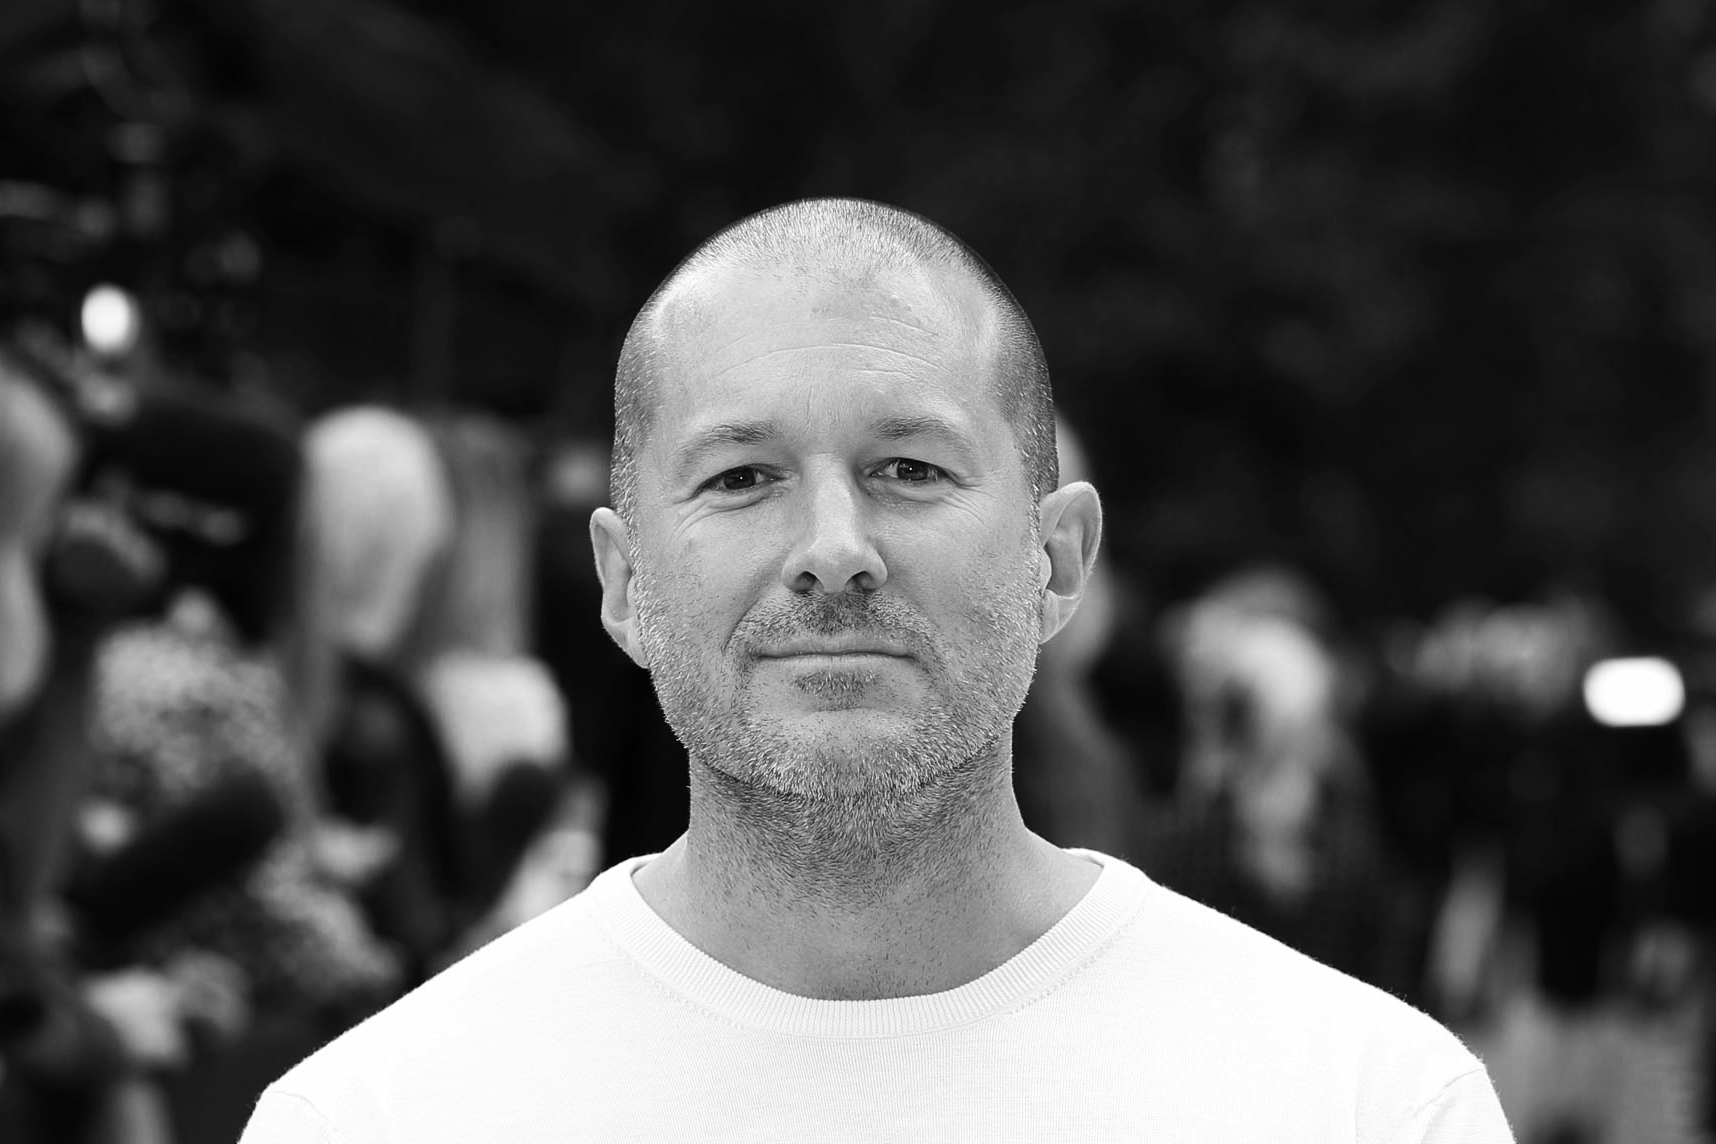 Jonathan Ive attends the front row for the Burberry Prorsum show on day 4 of London Fashion Week Spring/Summer 2013 on September 17, 2012 in London.